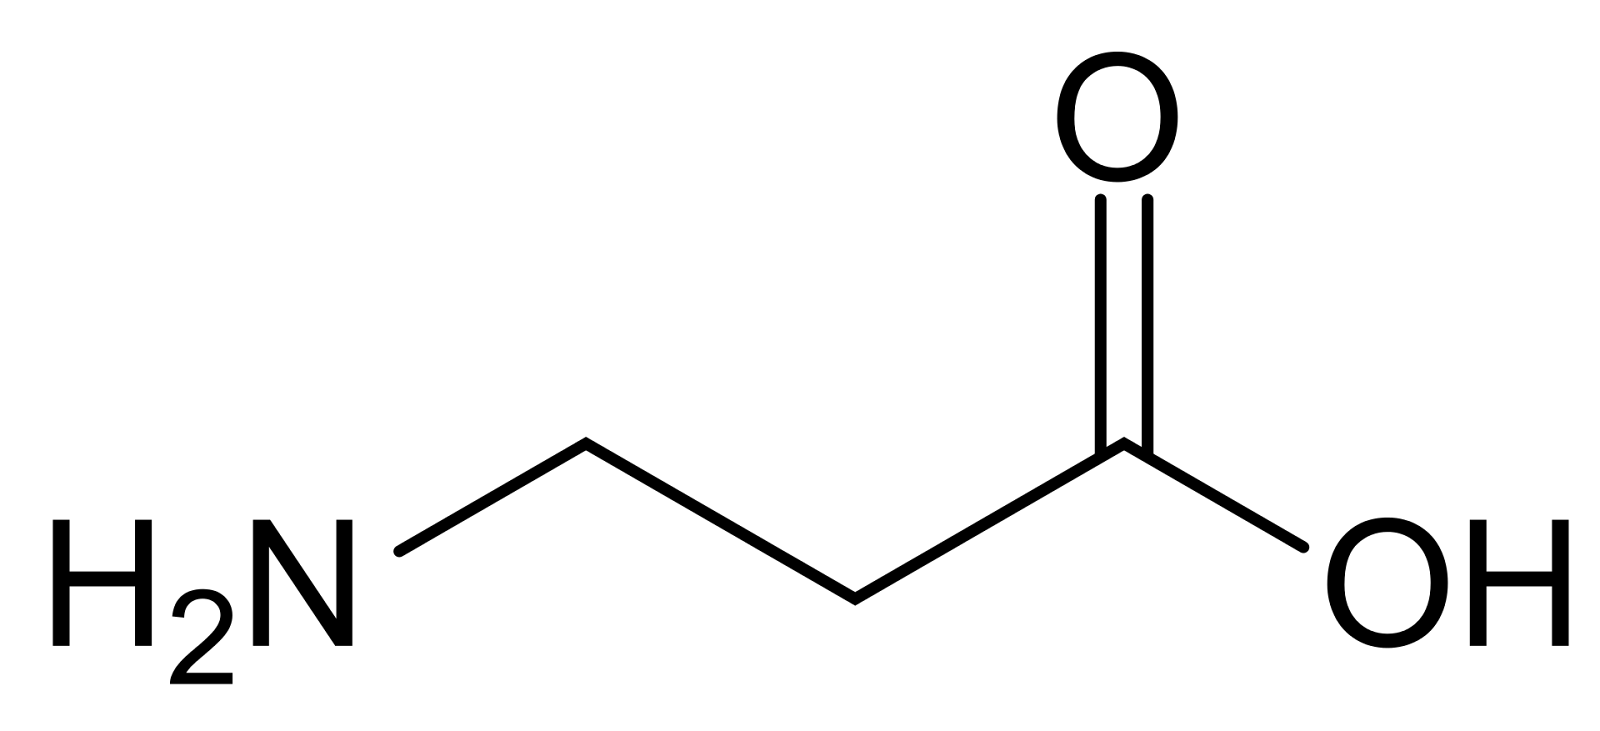 Chemical structure of beta-alanine.